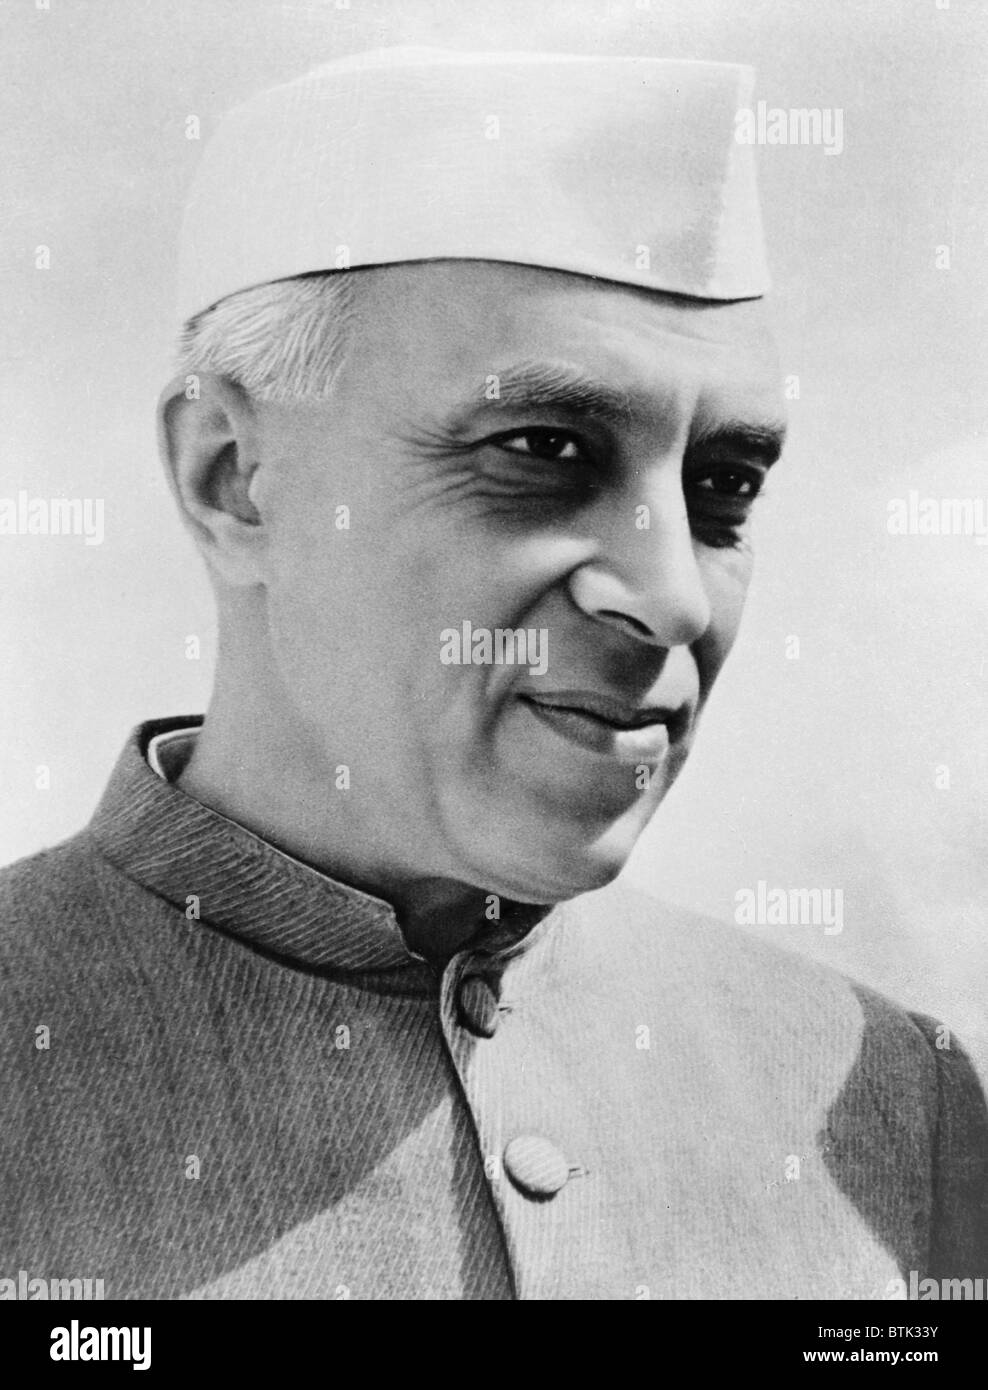 Jawaharlal Nehru (1889-1964), the first Prime Minister of India following independence from Britain in 1947. - Stock Image